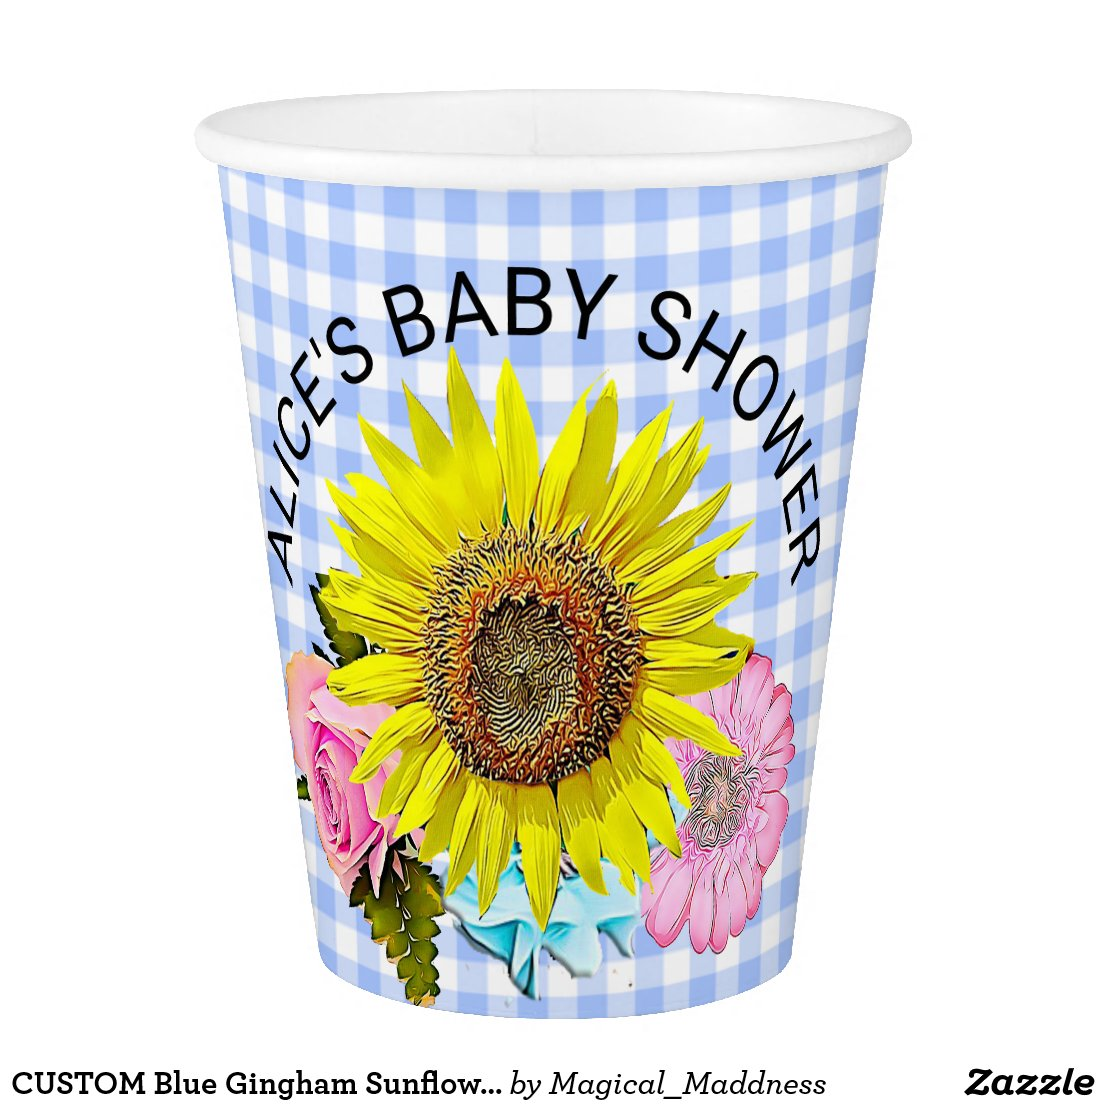 CUSTOM Blue Gingham Sunflower Flower Paper Cup